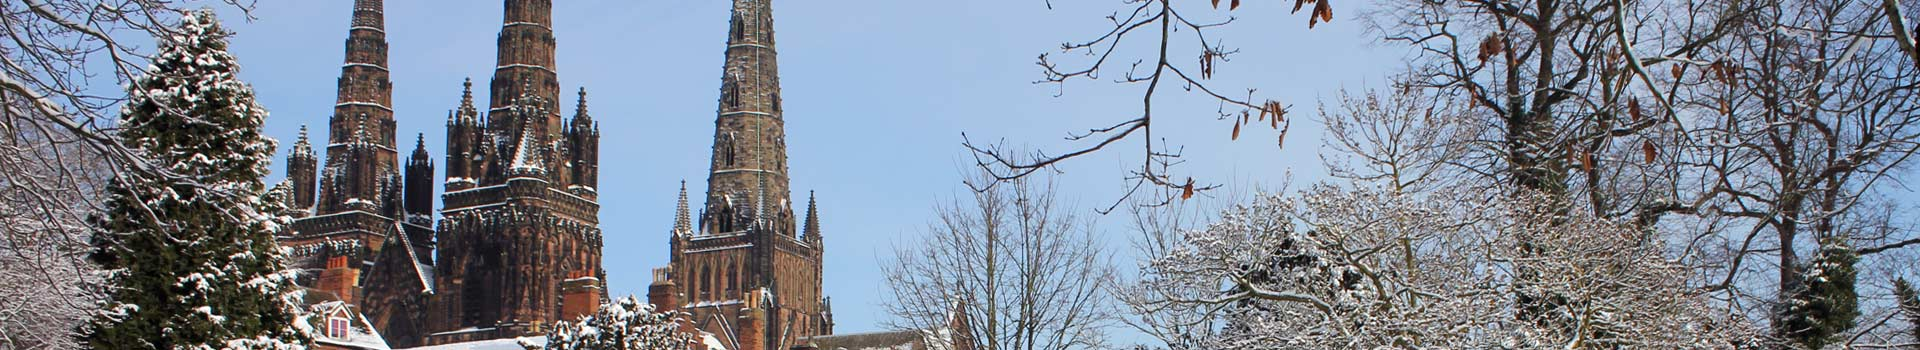 Snowy Lichfield Cathedral